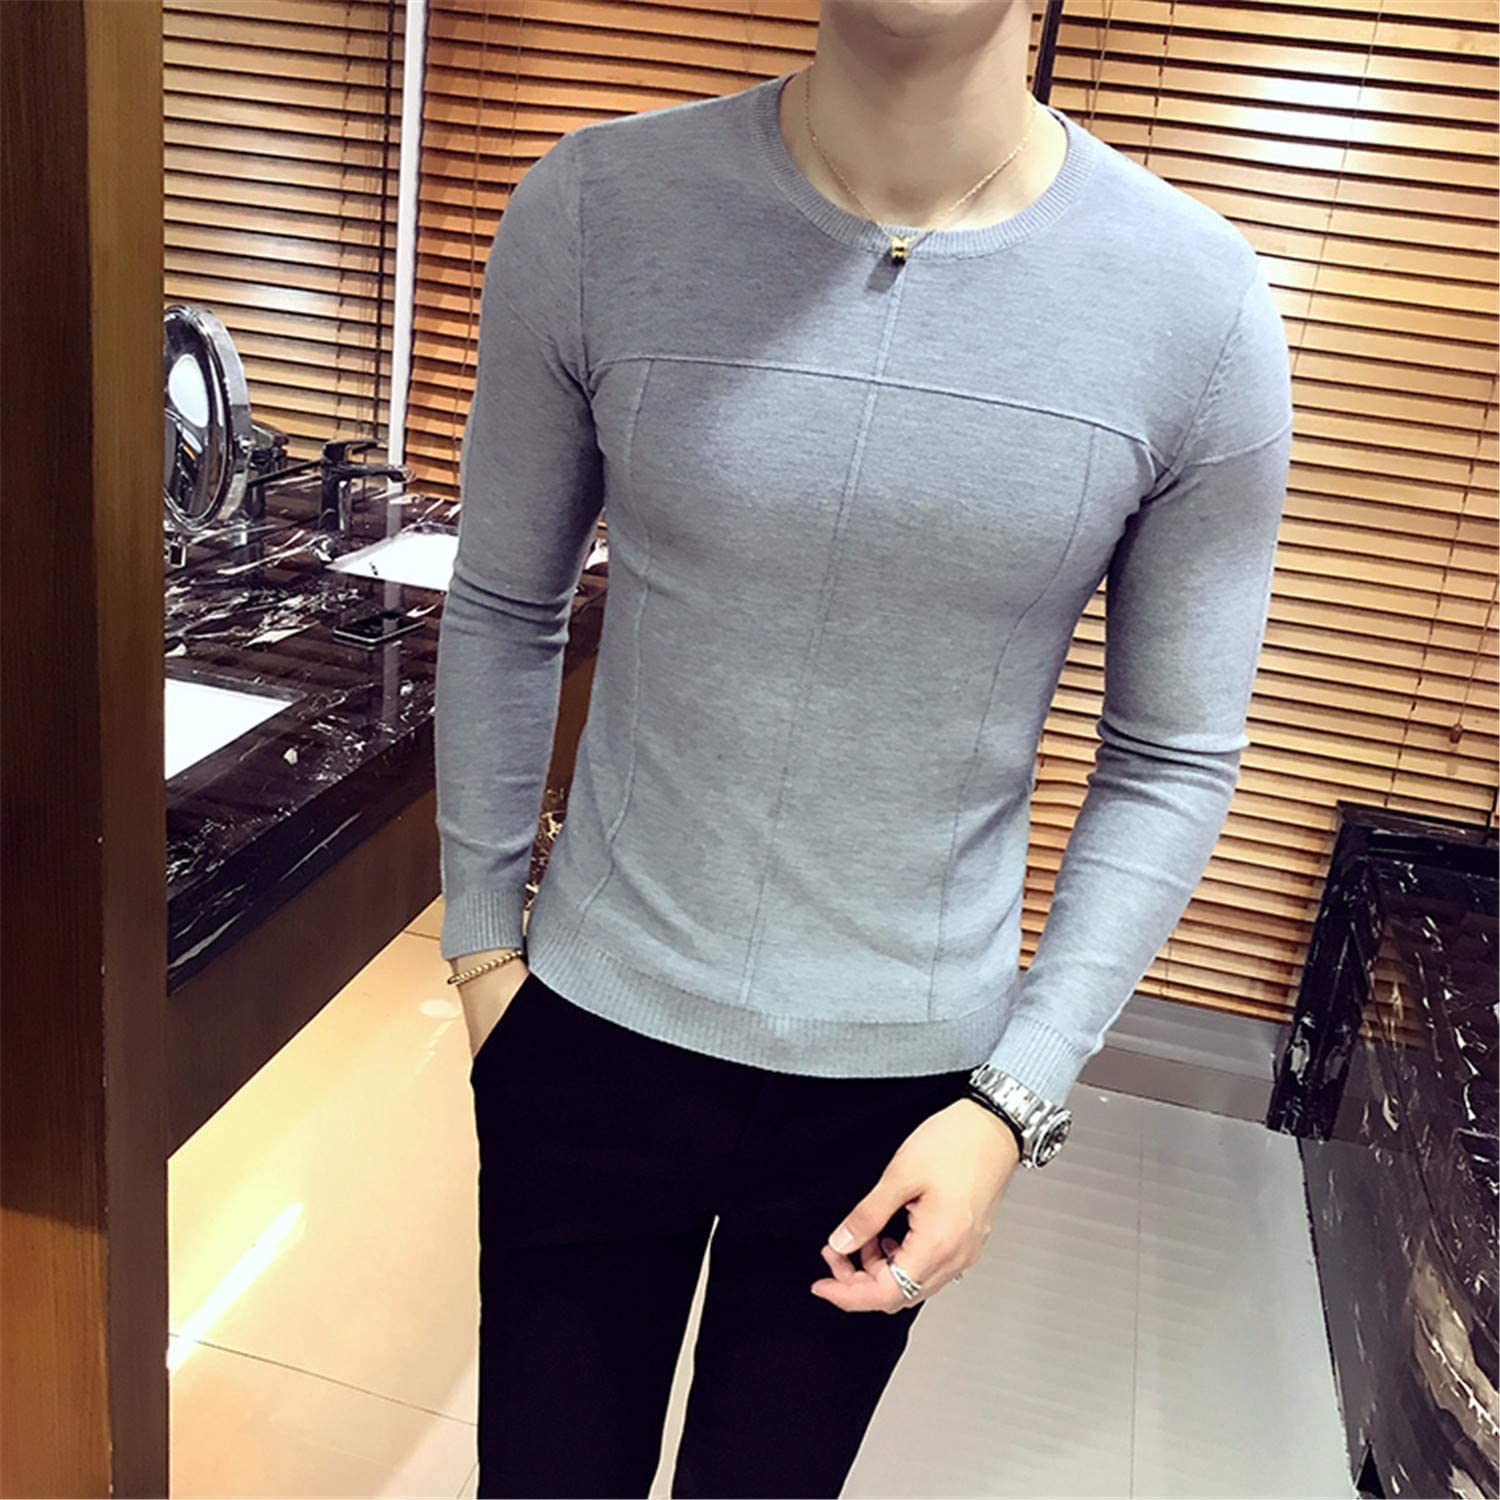 New Pattern Clothes Classic England Wind Solid Man Unlined Upper Garment Sweater